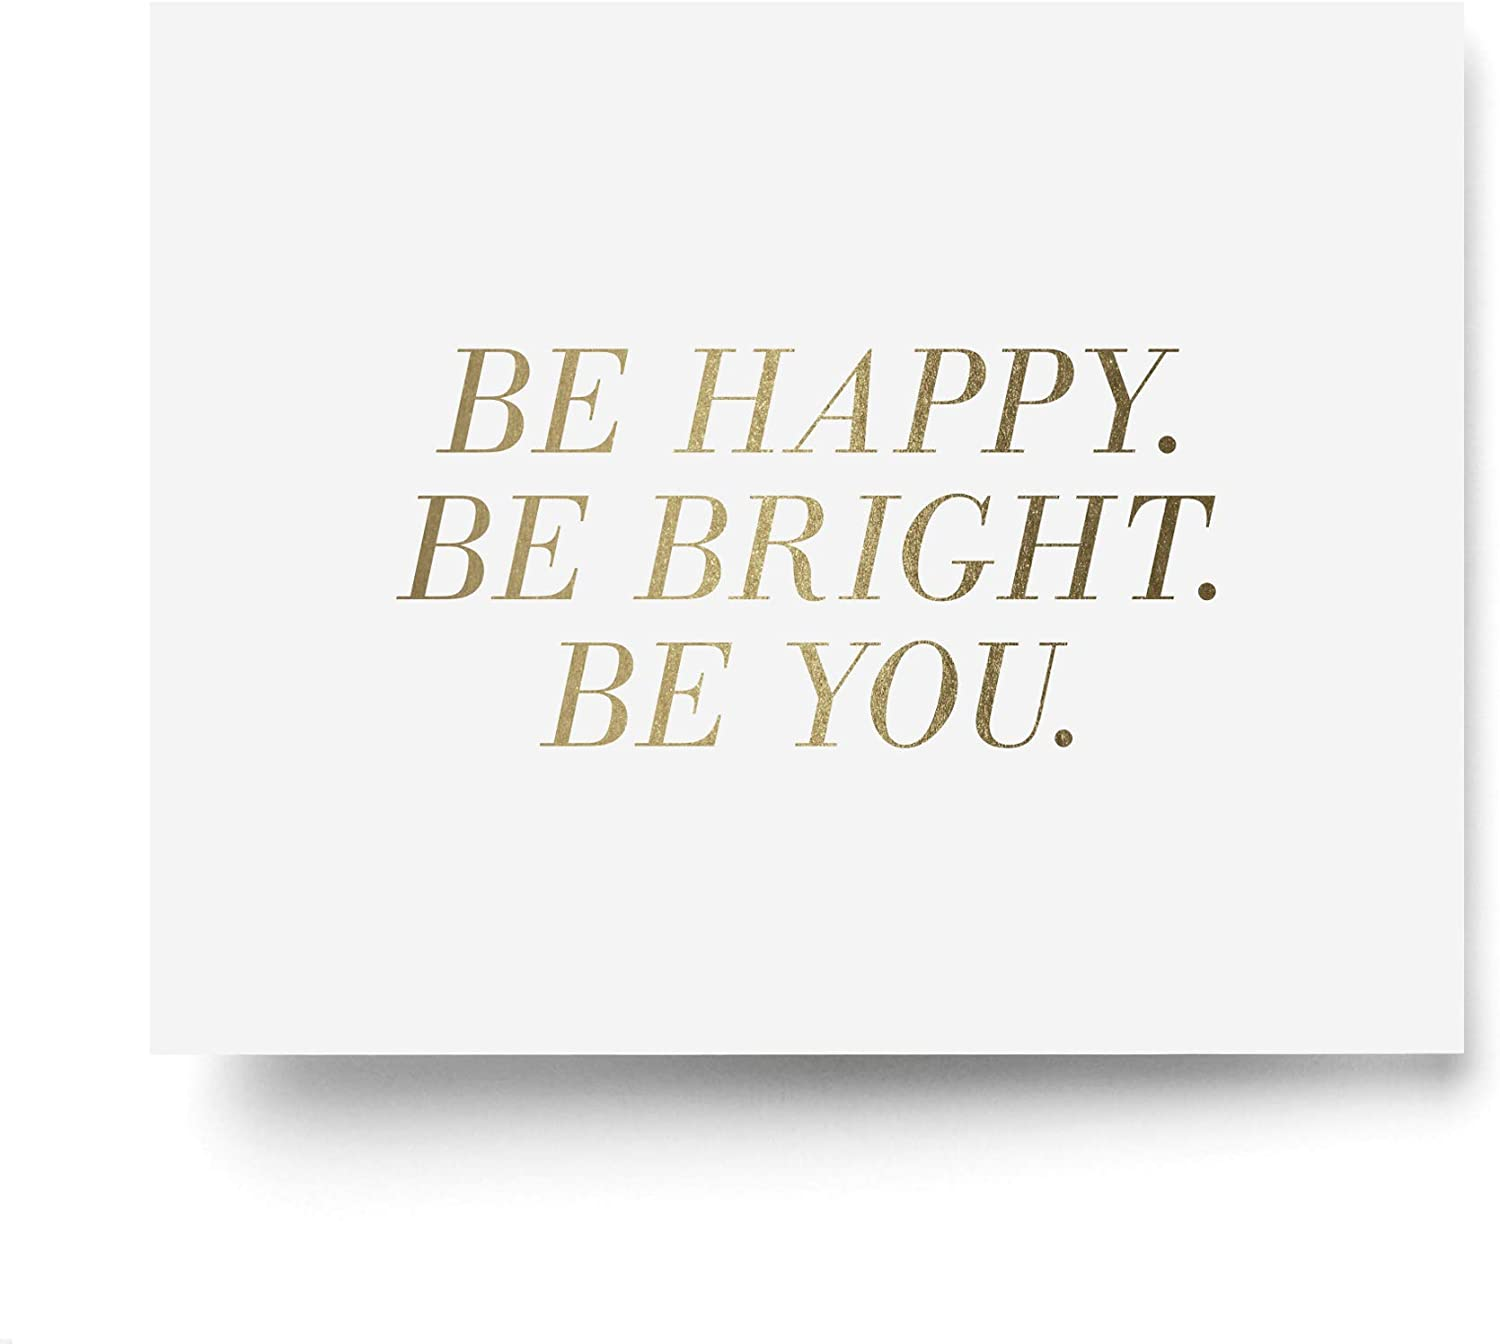 Inspirational Wall Art, Be Happy Be Bright Be You, Wall Decor, Inspirational Quotes, Gold Foil Sign, Motivational Design For Office, Living Room, Bedroom, Nursery 8x10 Print, Bliss Paper Boutique